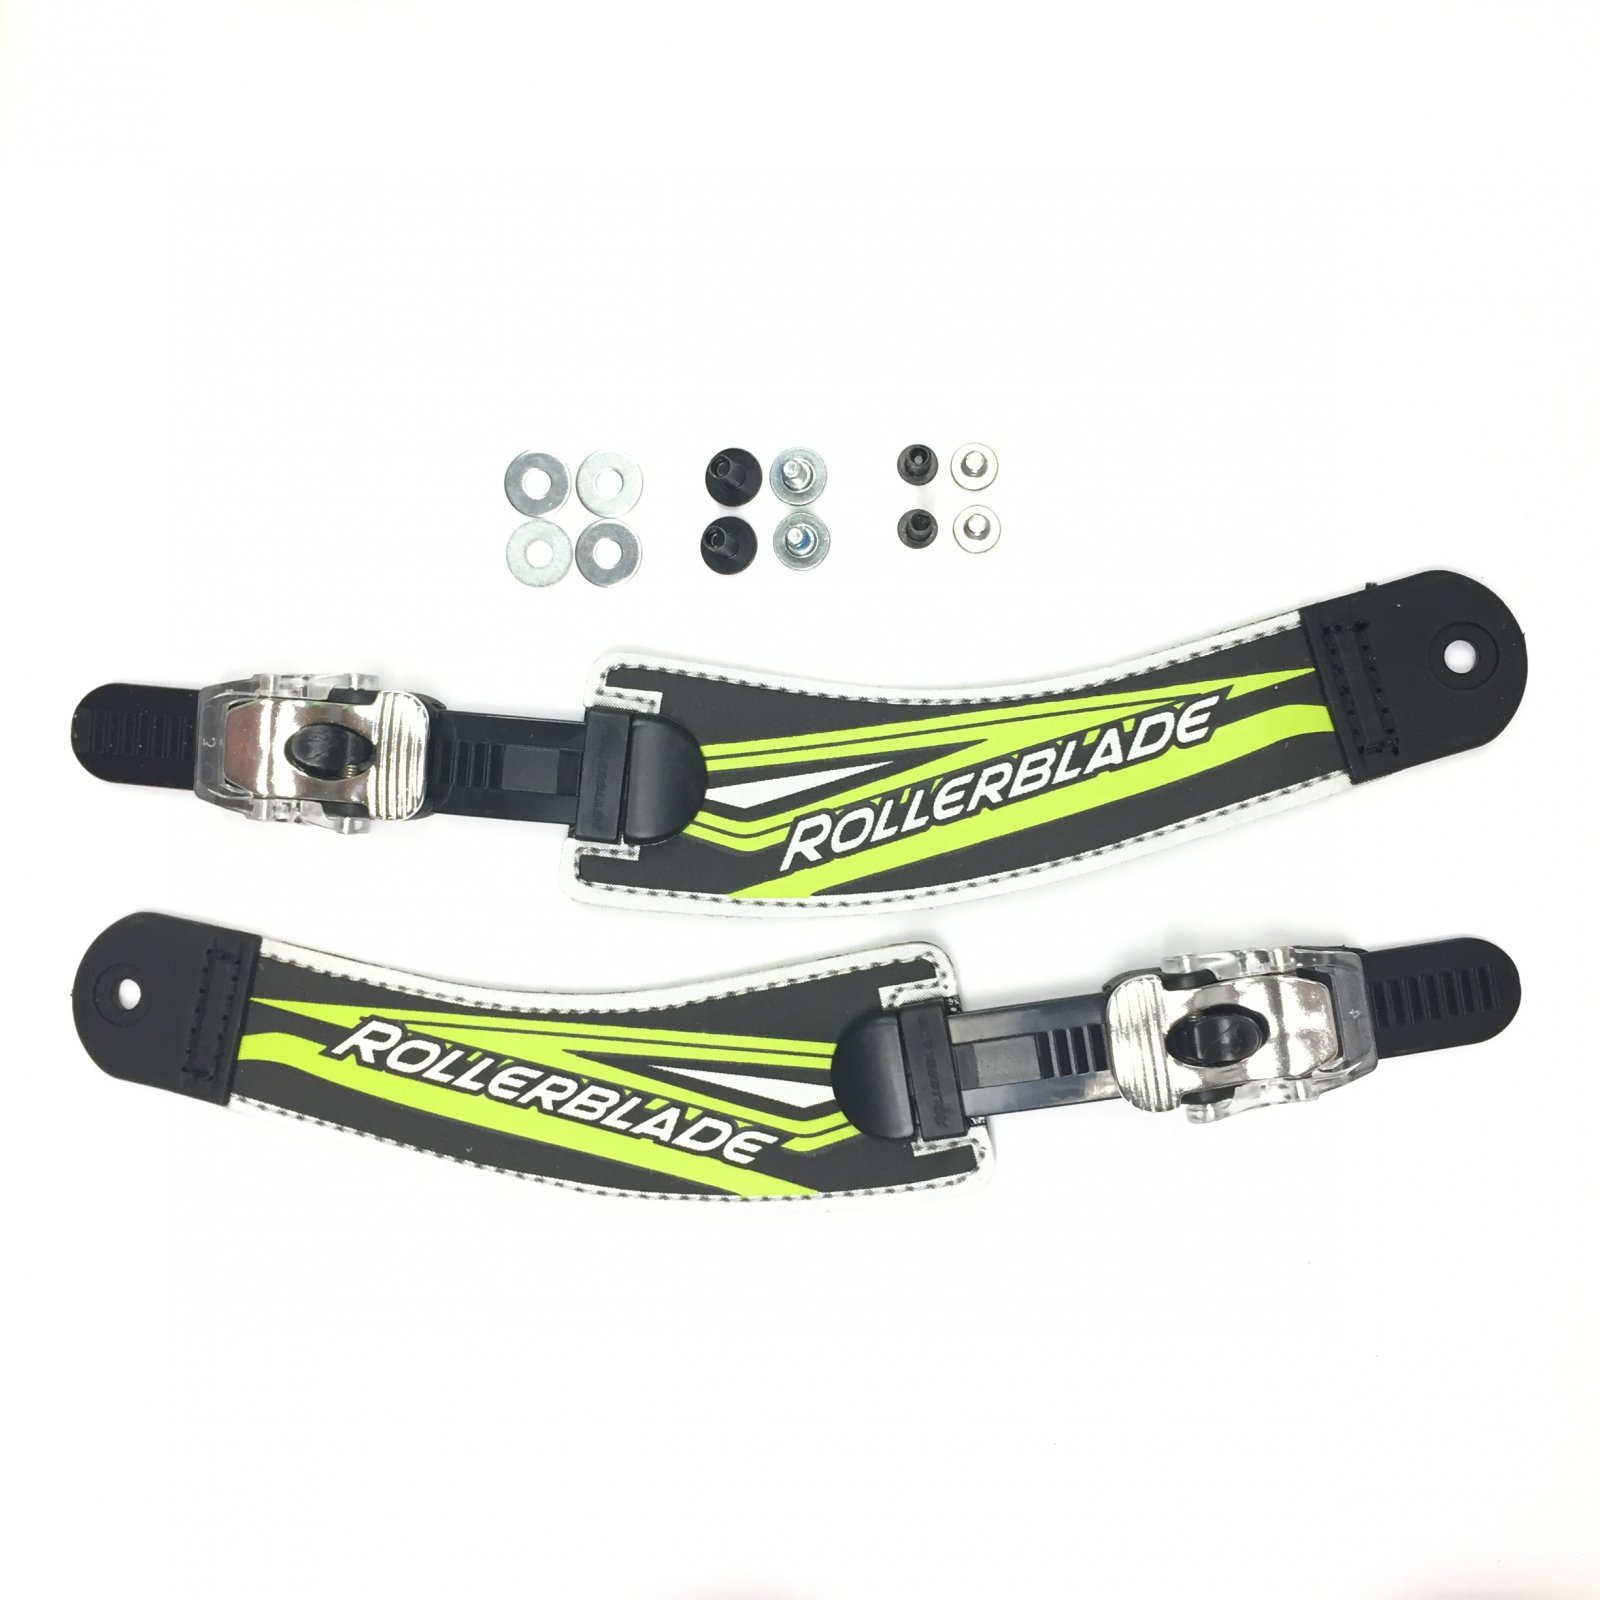 Rollerblade (S)Buc + INS Band Tempest (1PR)